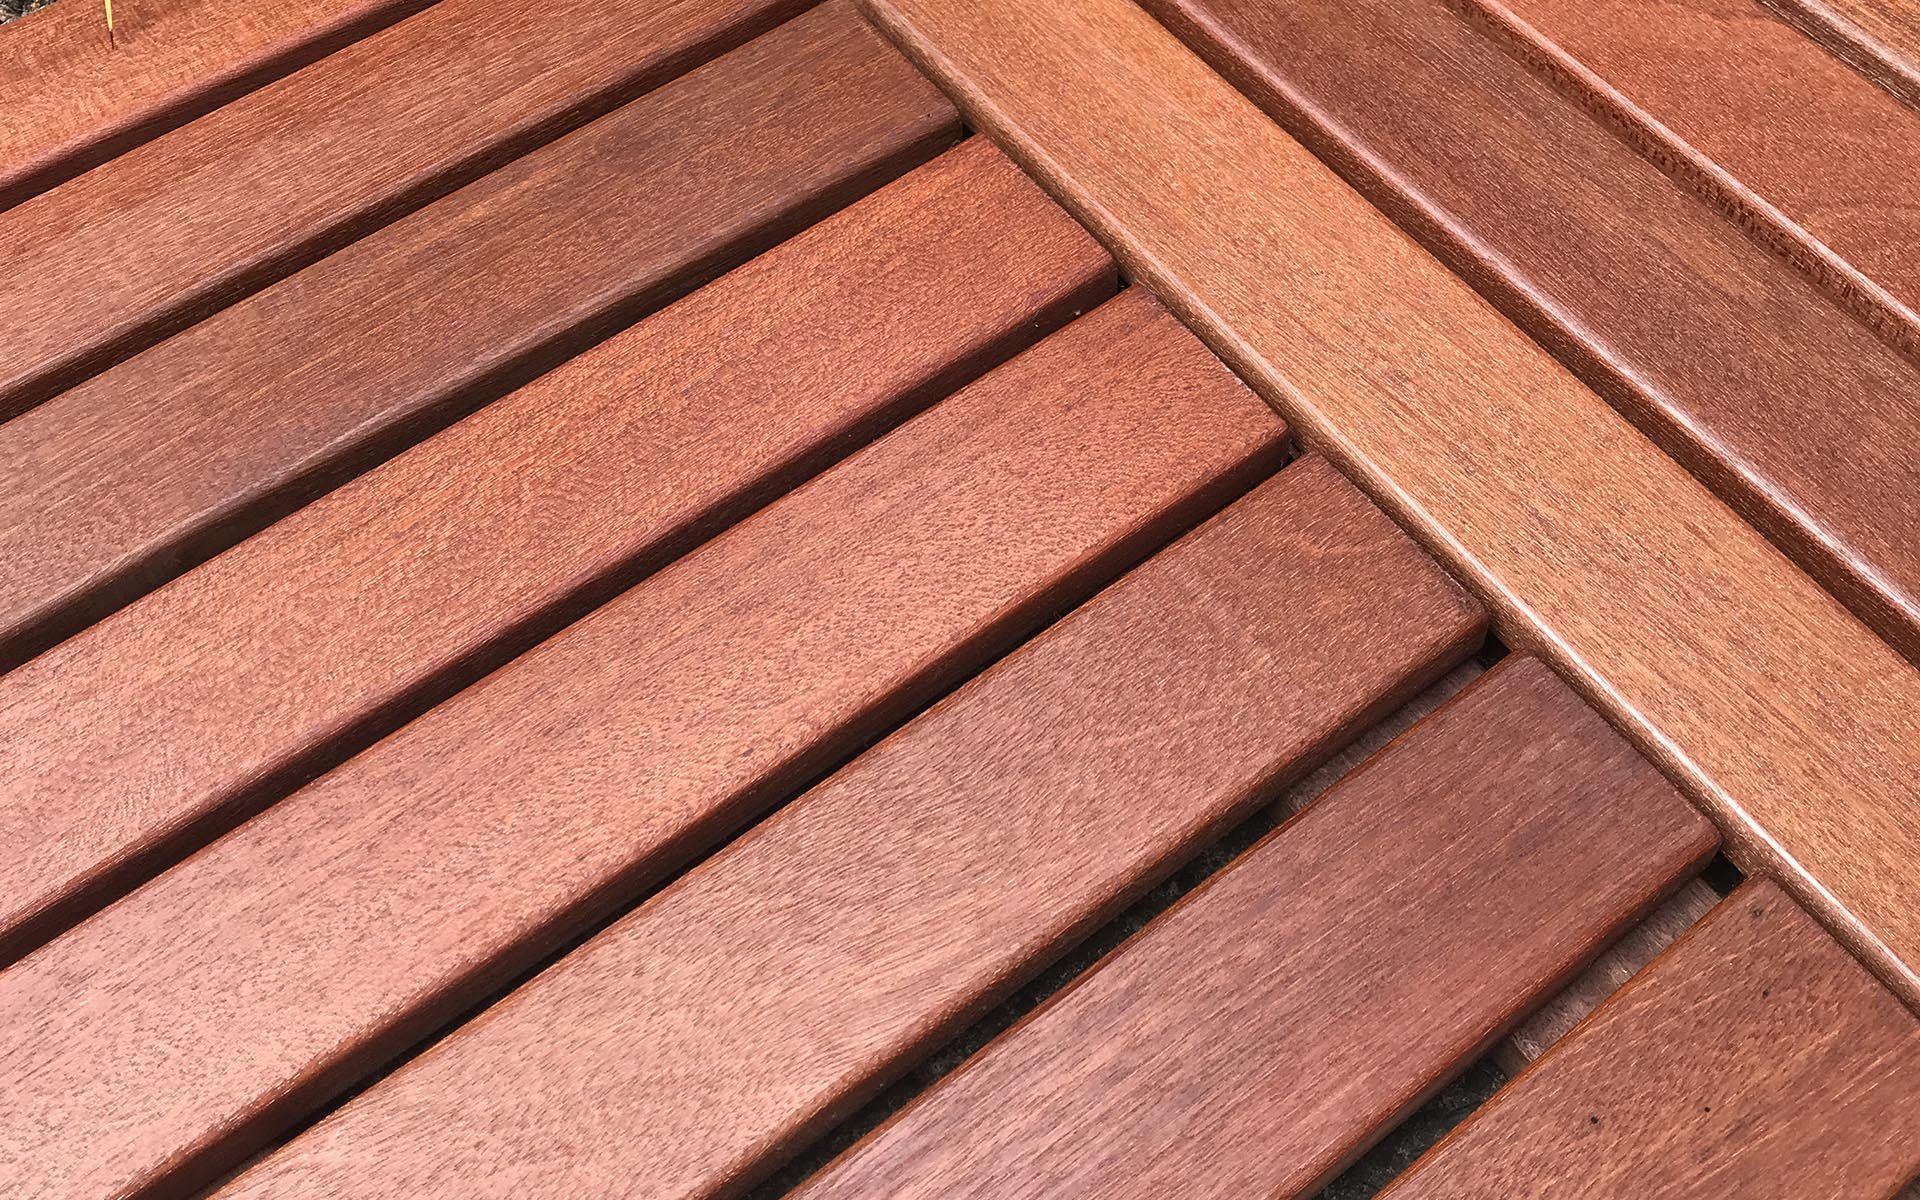 Interlocking Deck Tiles Deck Tiles Interlocking Wood Deck Tiles